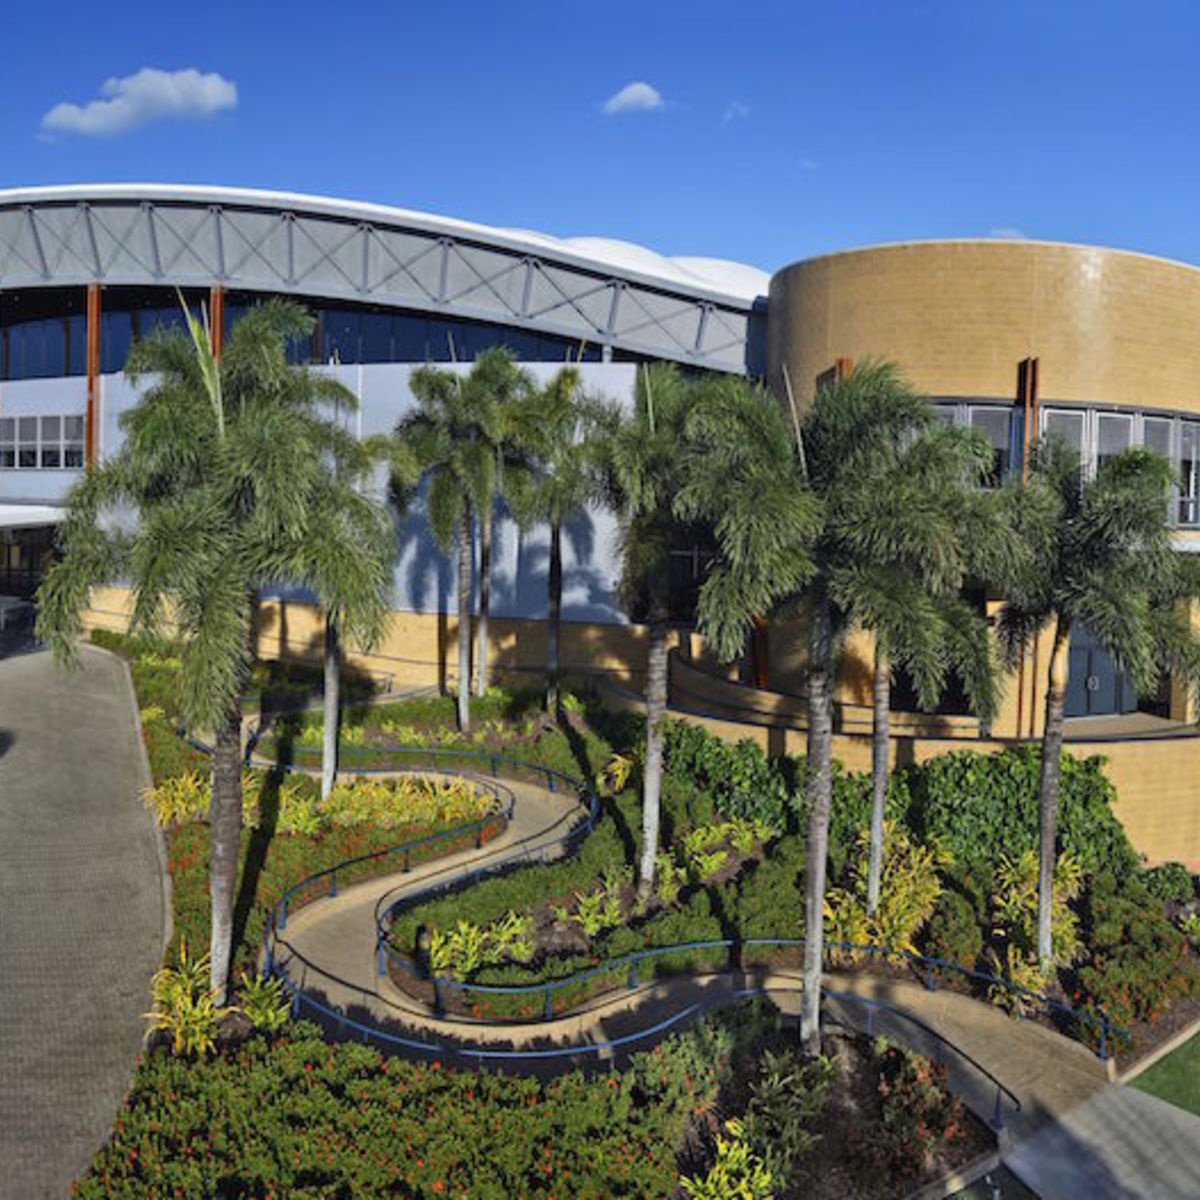 Exterior image of Cairns Convention Center